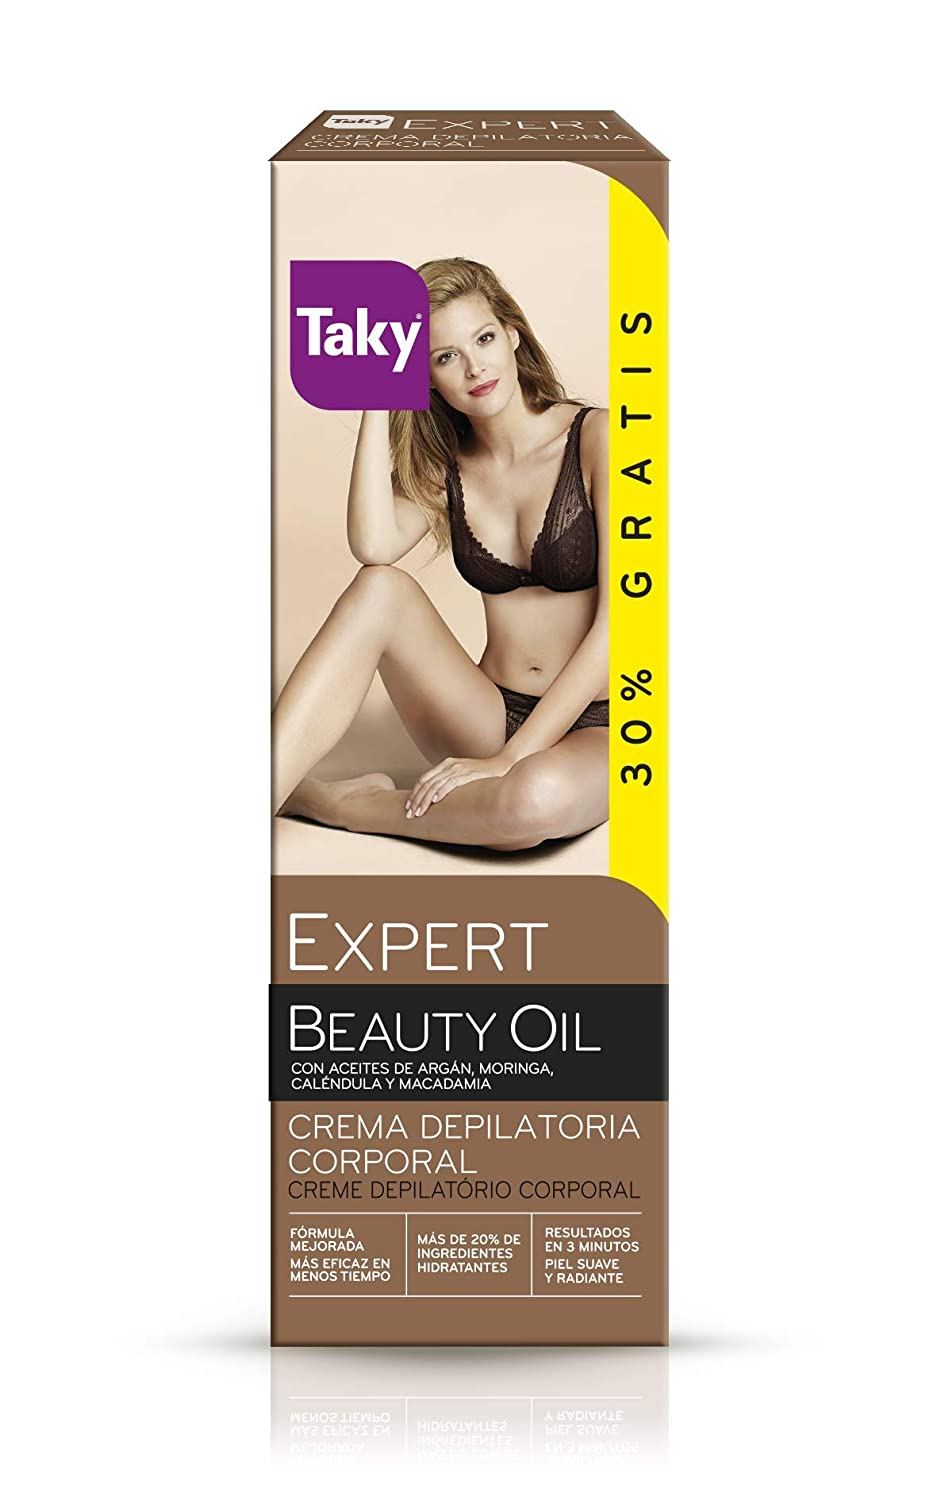 Amazon.com: TAKY EXPERT CON ORO crema depilatoria corporal 100 ml: Beauty